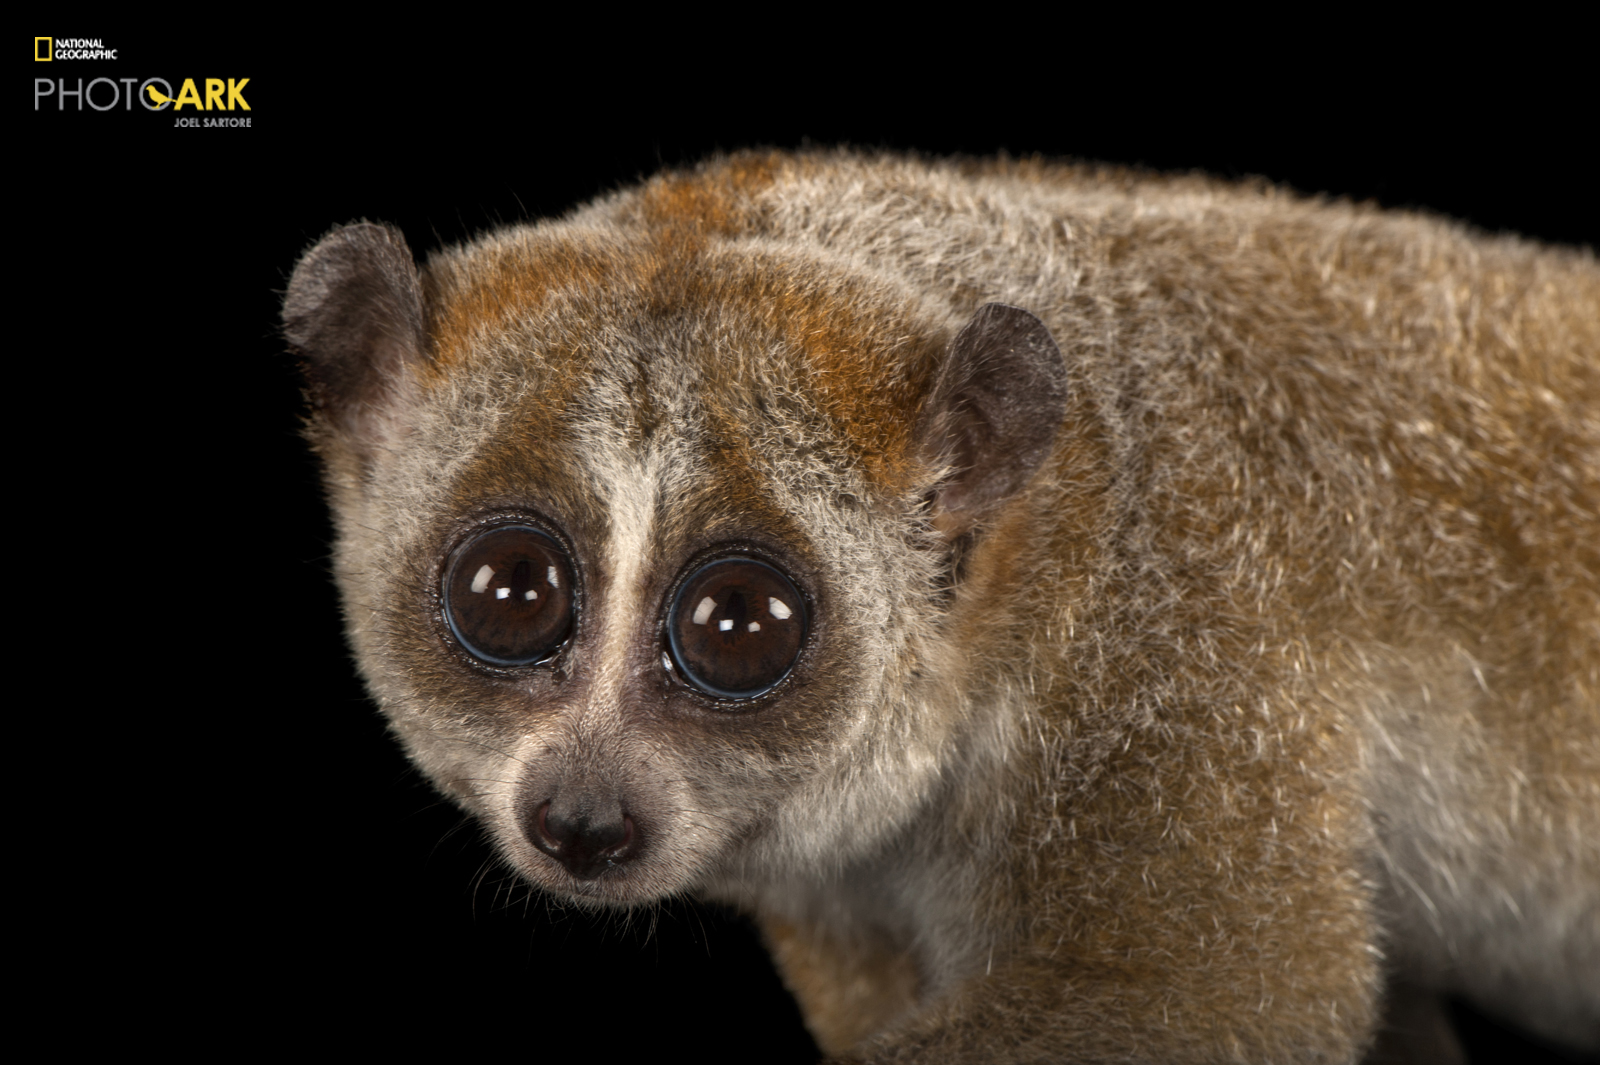 © Photo by Joel Sartore/National Geographic Photo Ark A pygmy slow loris, Nycticebus pygmaeus, at Omaha's Henry Doorly Zoo and Aquarium.